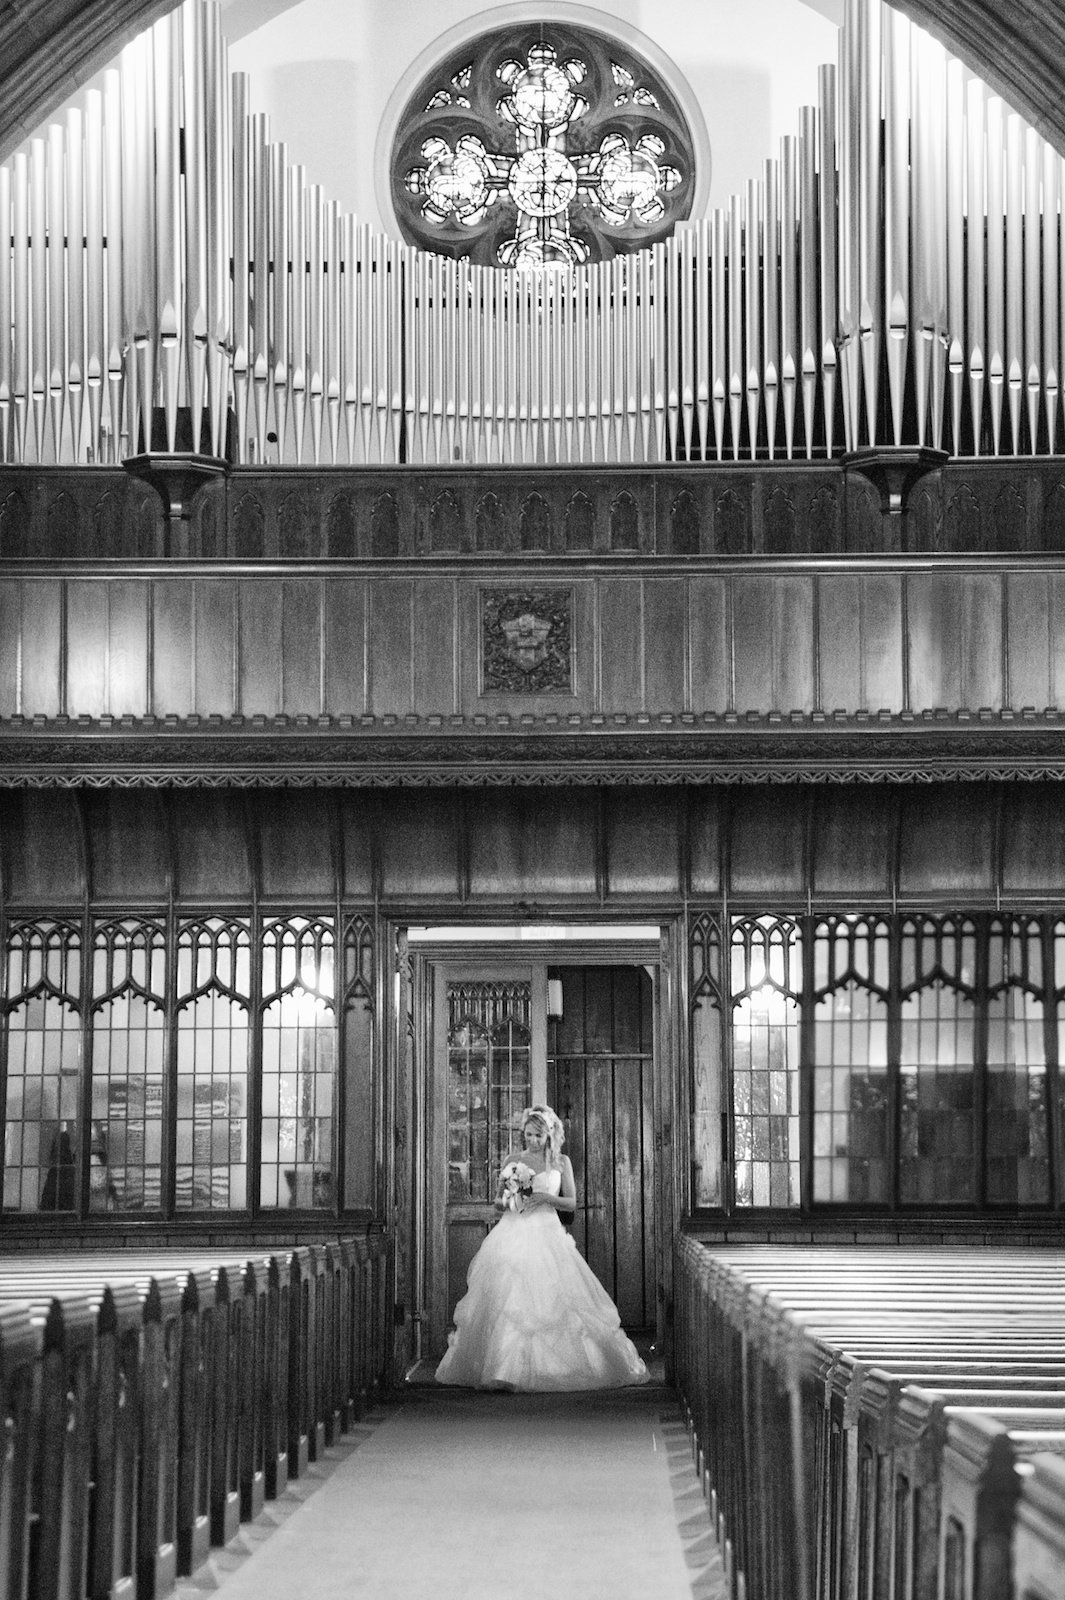 black and white wedding photo of bride walking down the aisle by herself